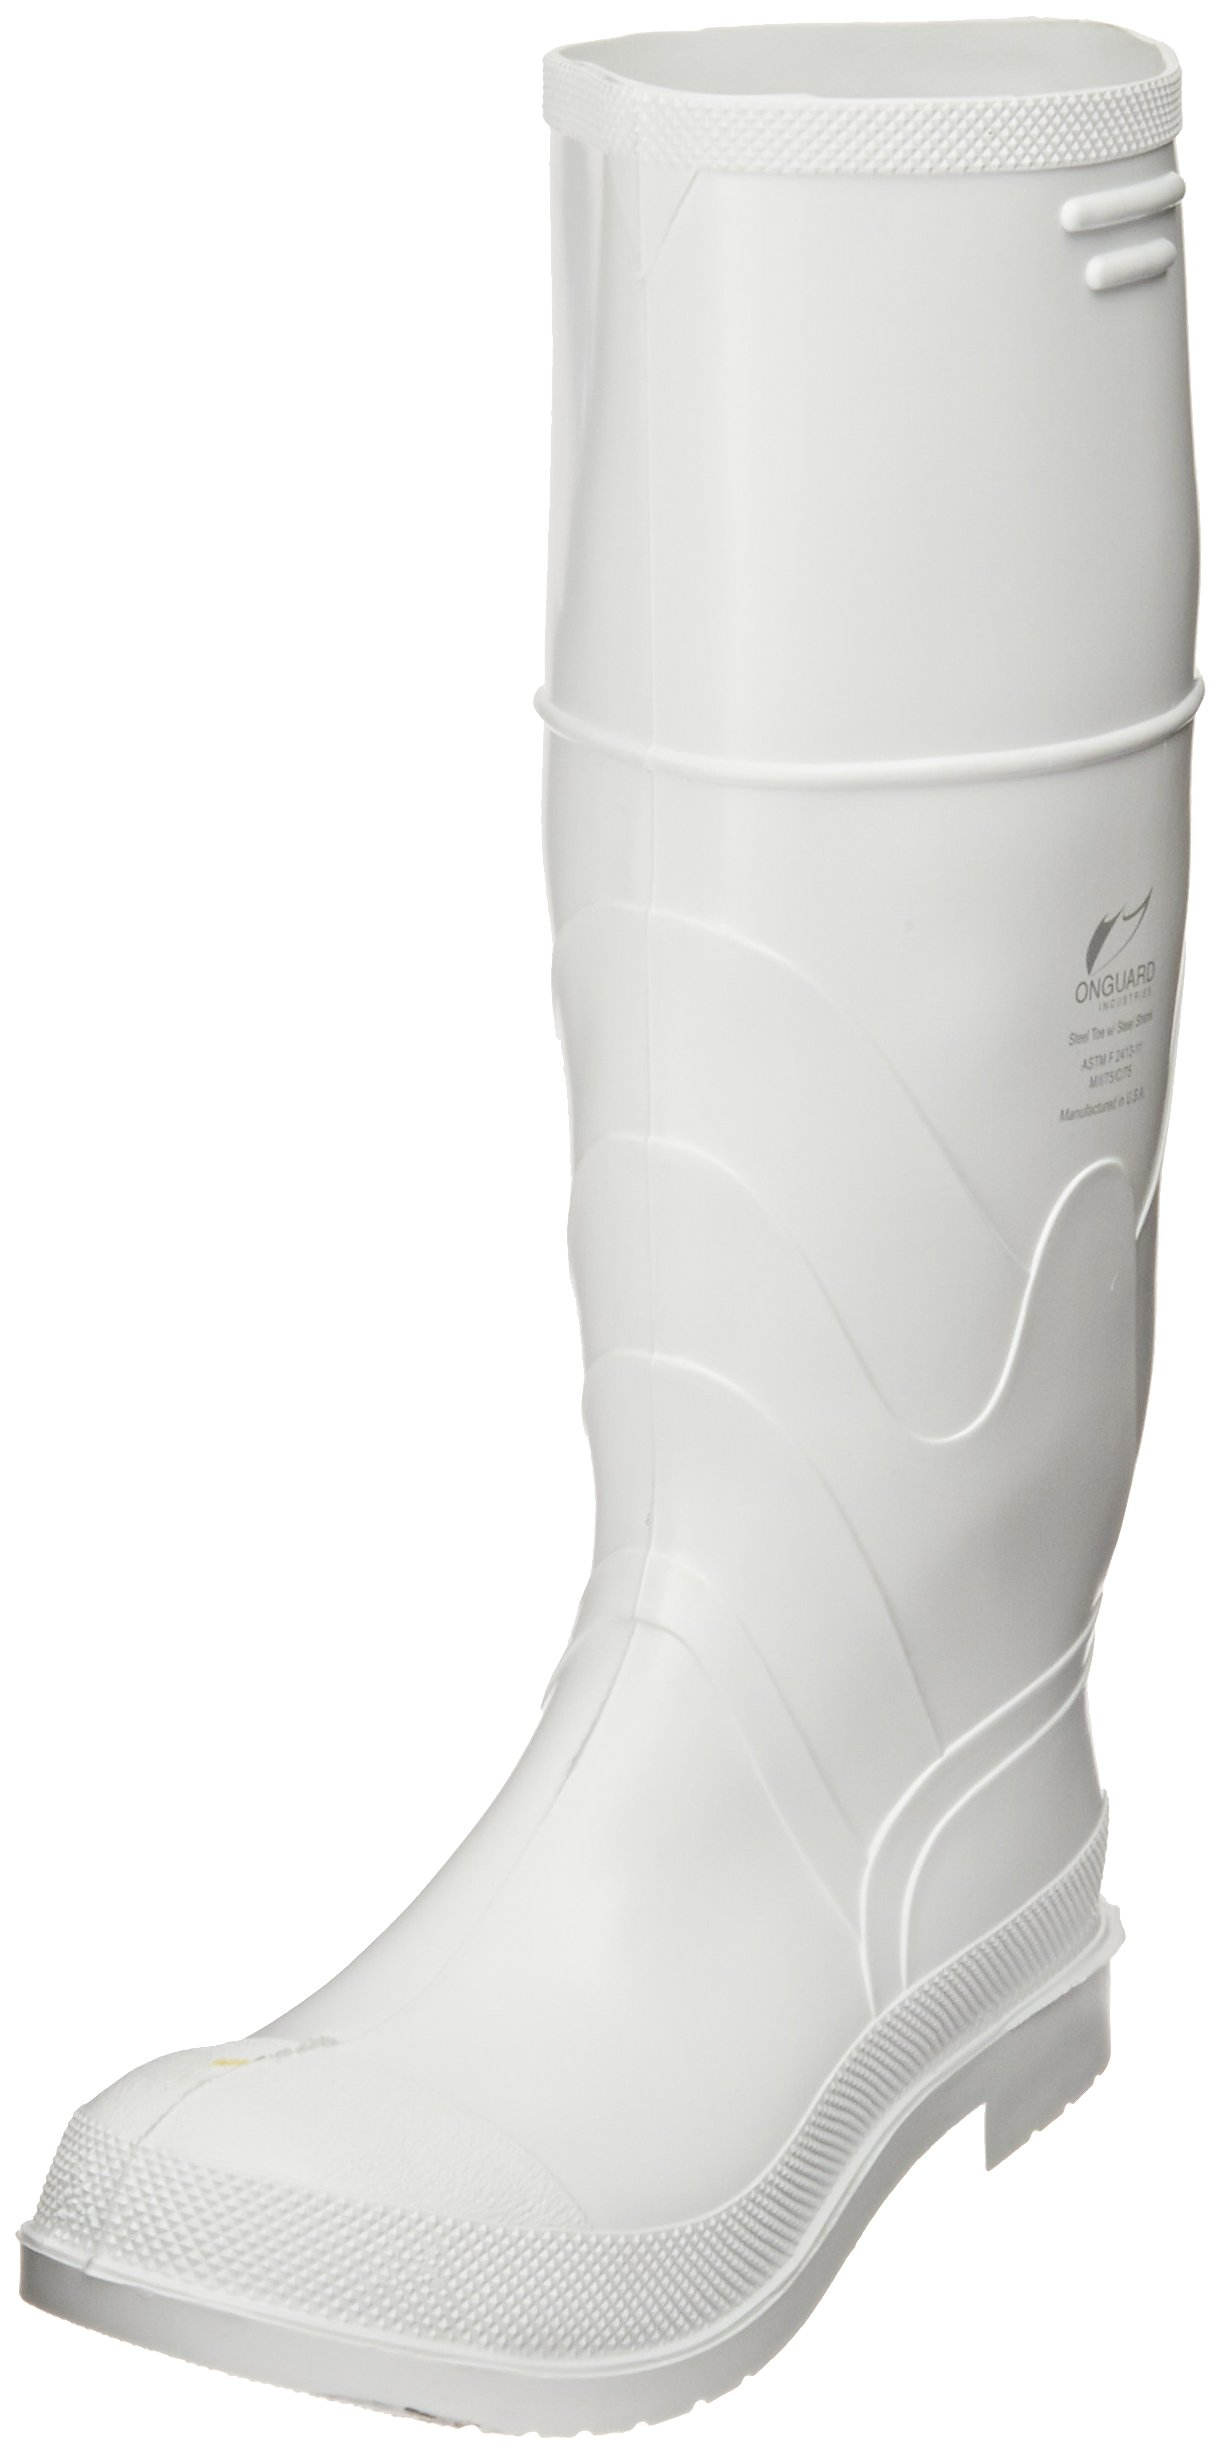 ONGUARD 81012 PVC Men's Steel Toe Knee Boots with Safety-Lok Outsole, 16'' Height, White, Size 10